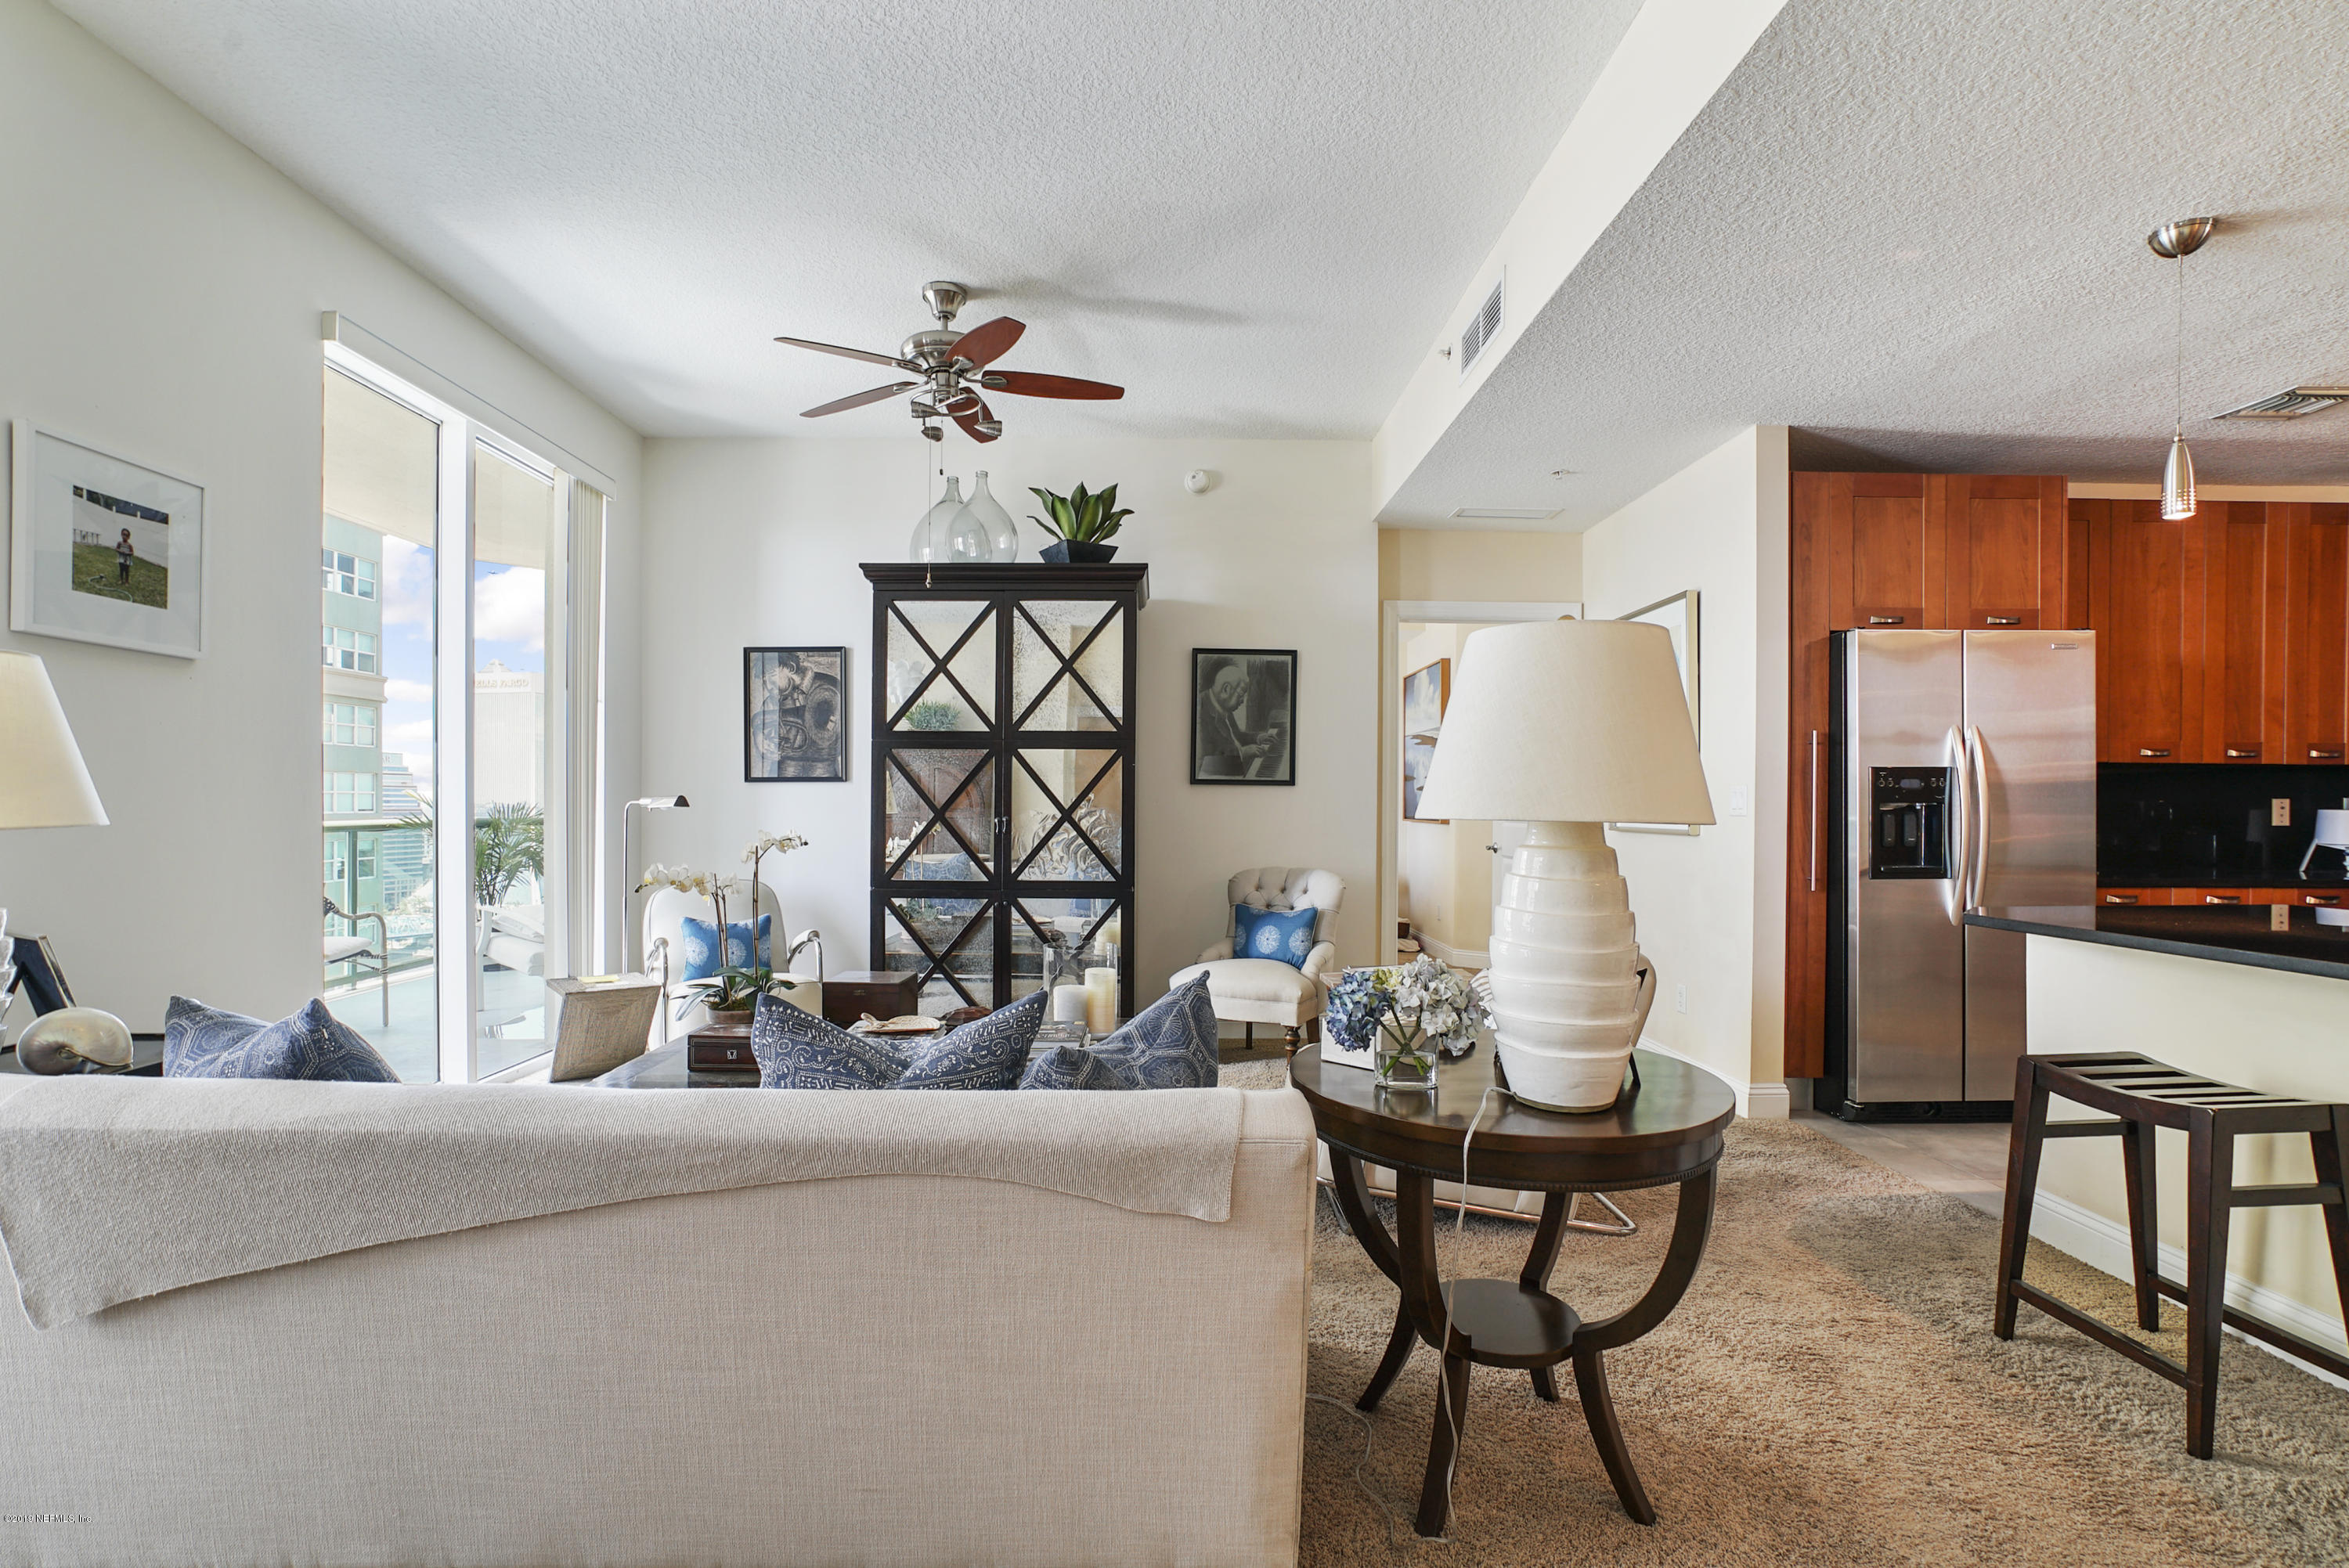 1431 RIVERPLACE, JACKSONVILLE, FLORIDA 32207, 2 Bedrooms Bedrooms, ,2 BathroomsBathrooms,Condo,For sale,RIVERPLACE,1013946